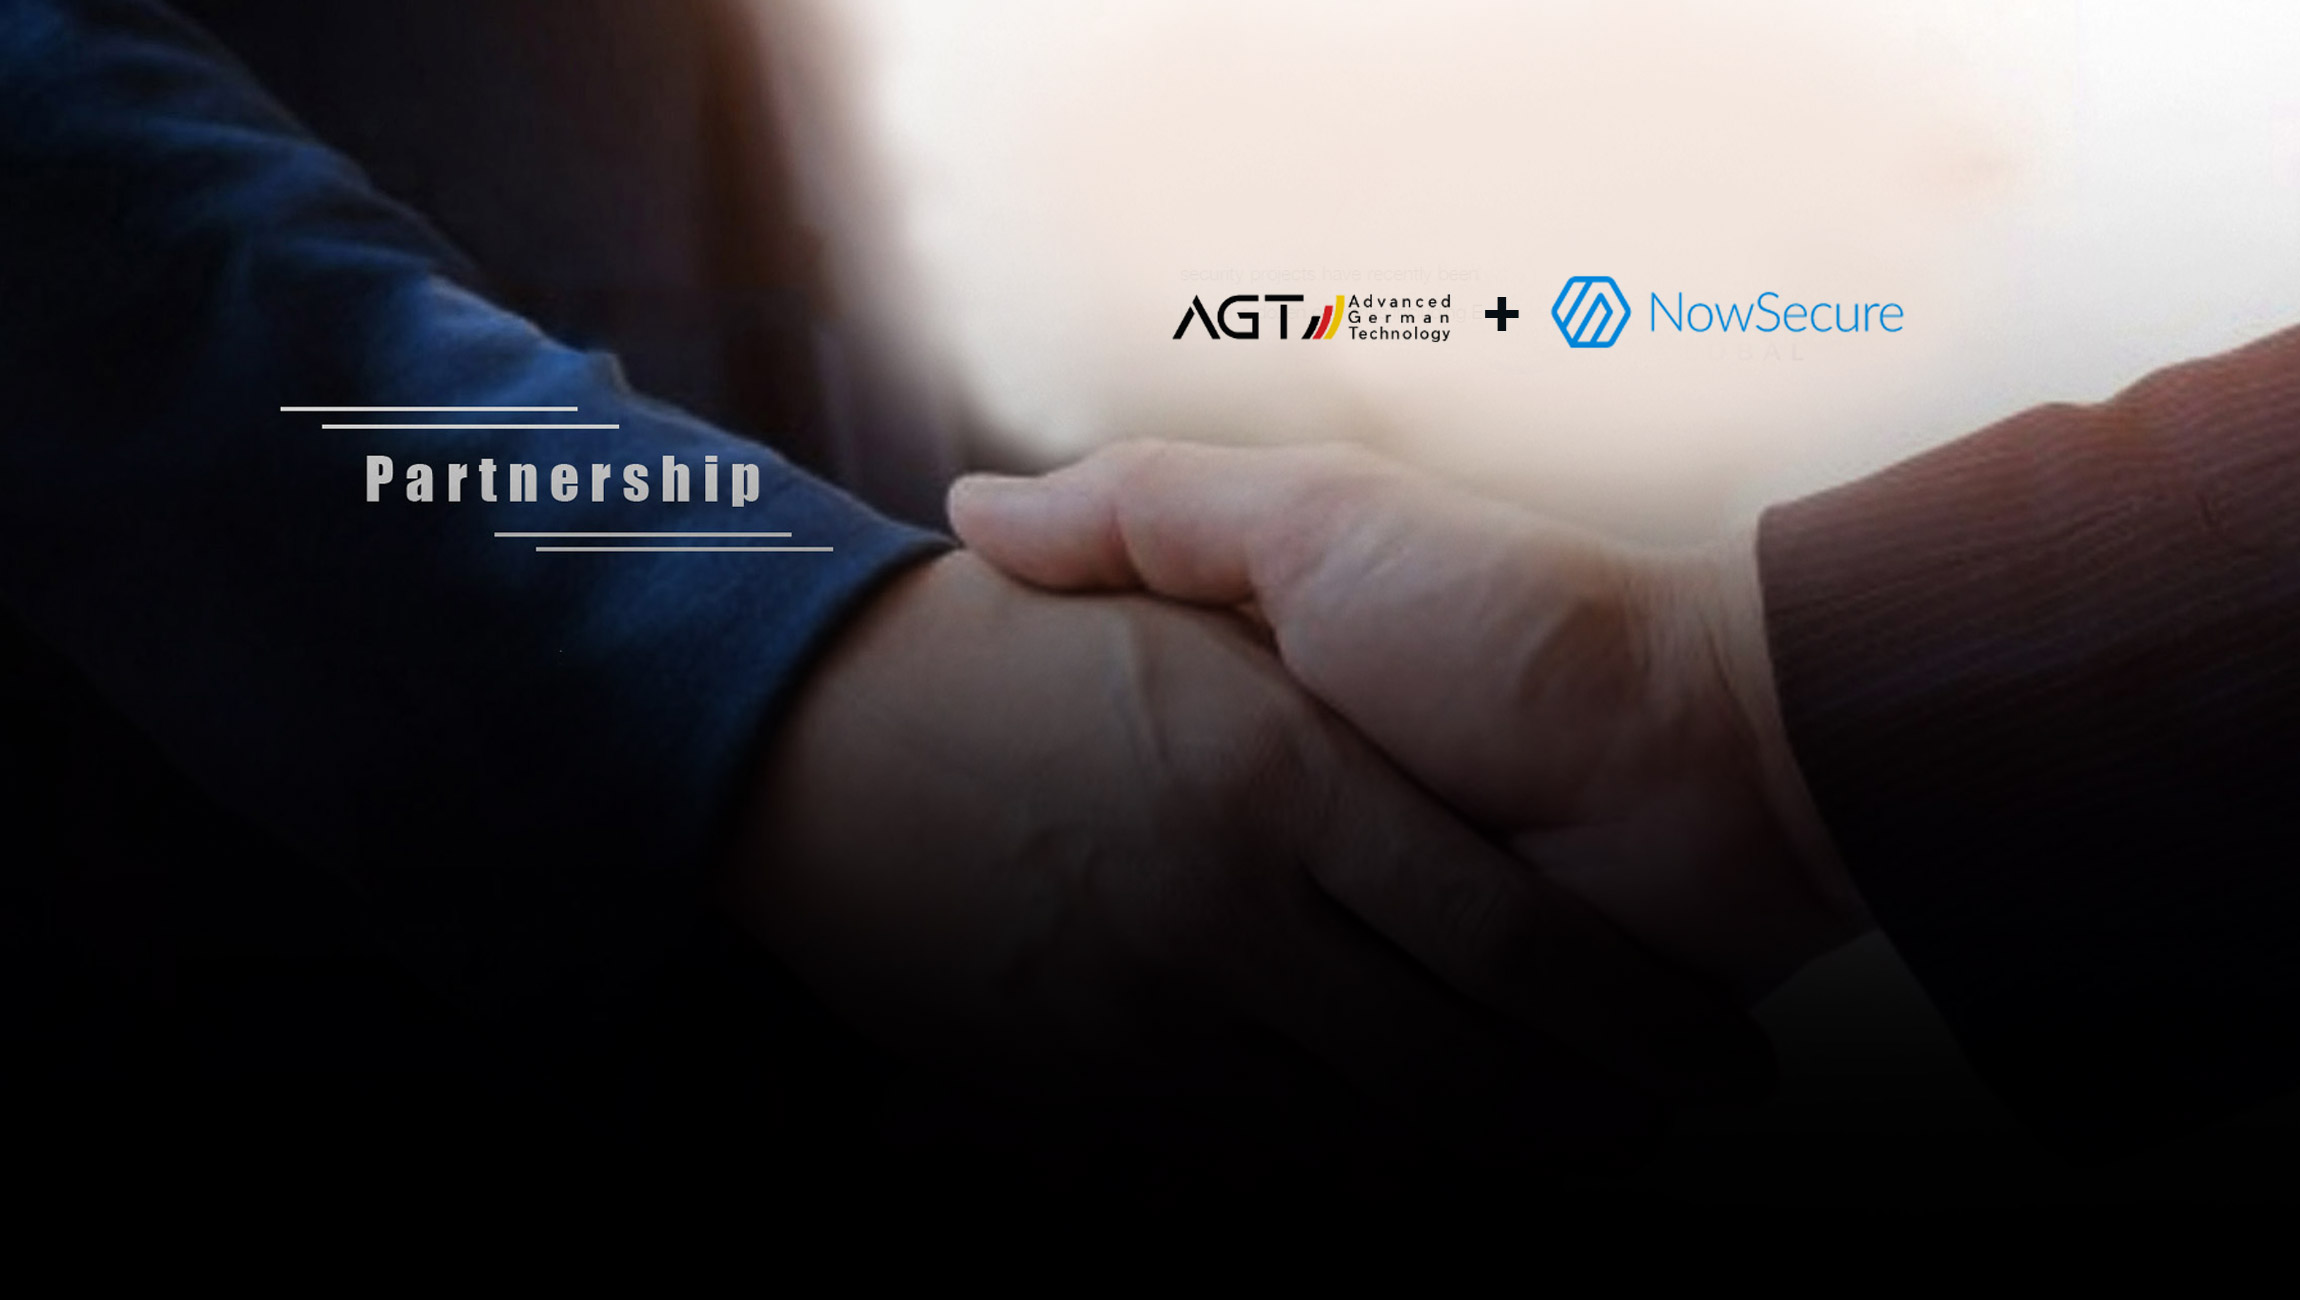 AGT and NowSecure Announce Global Partnership for Mobile Cybersecurity Resiliency